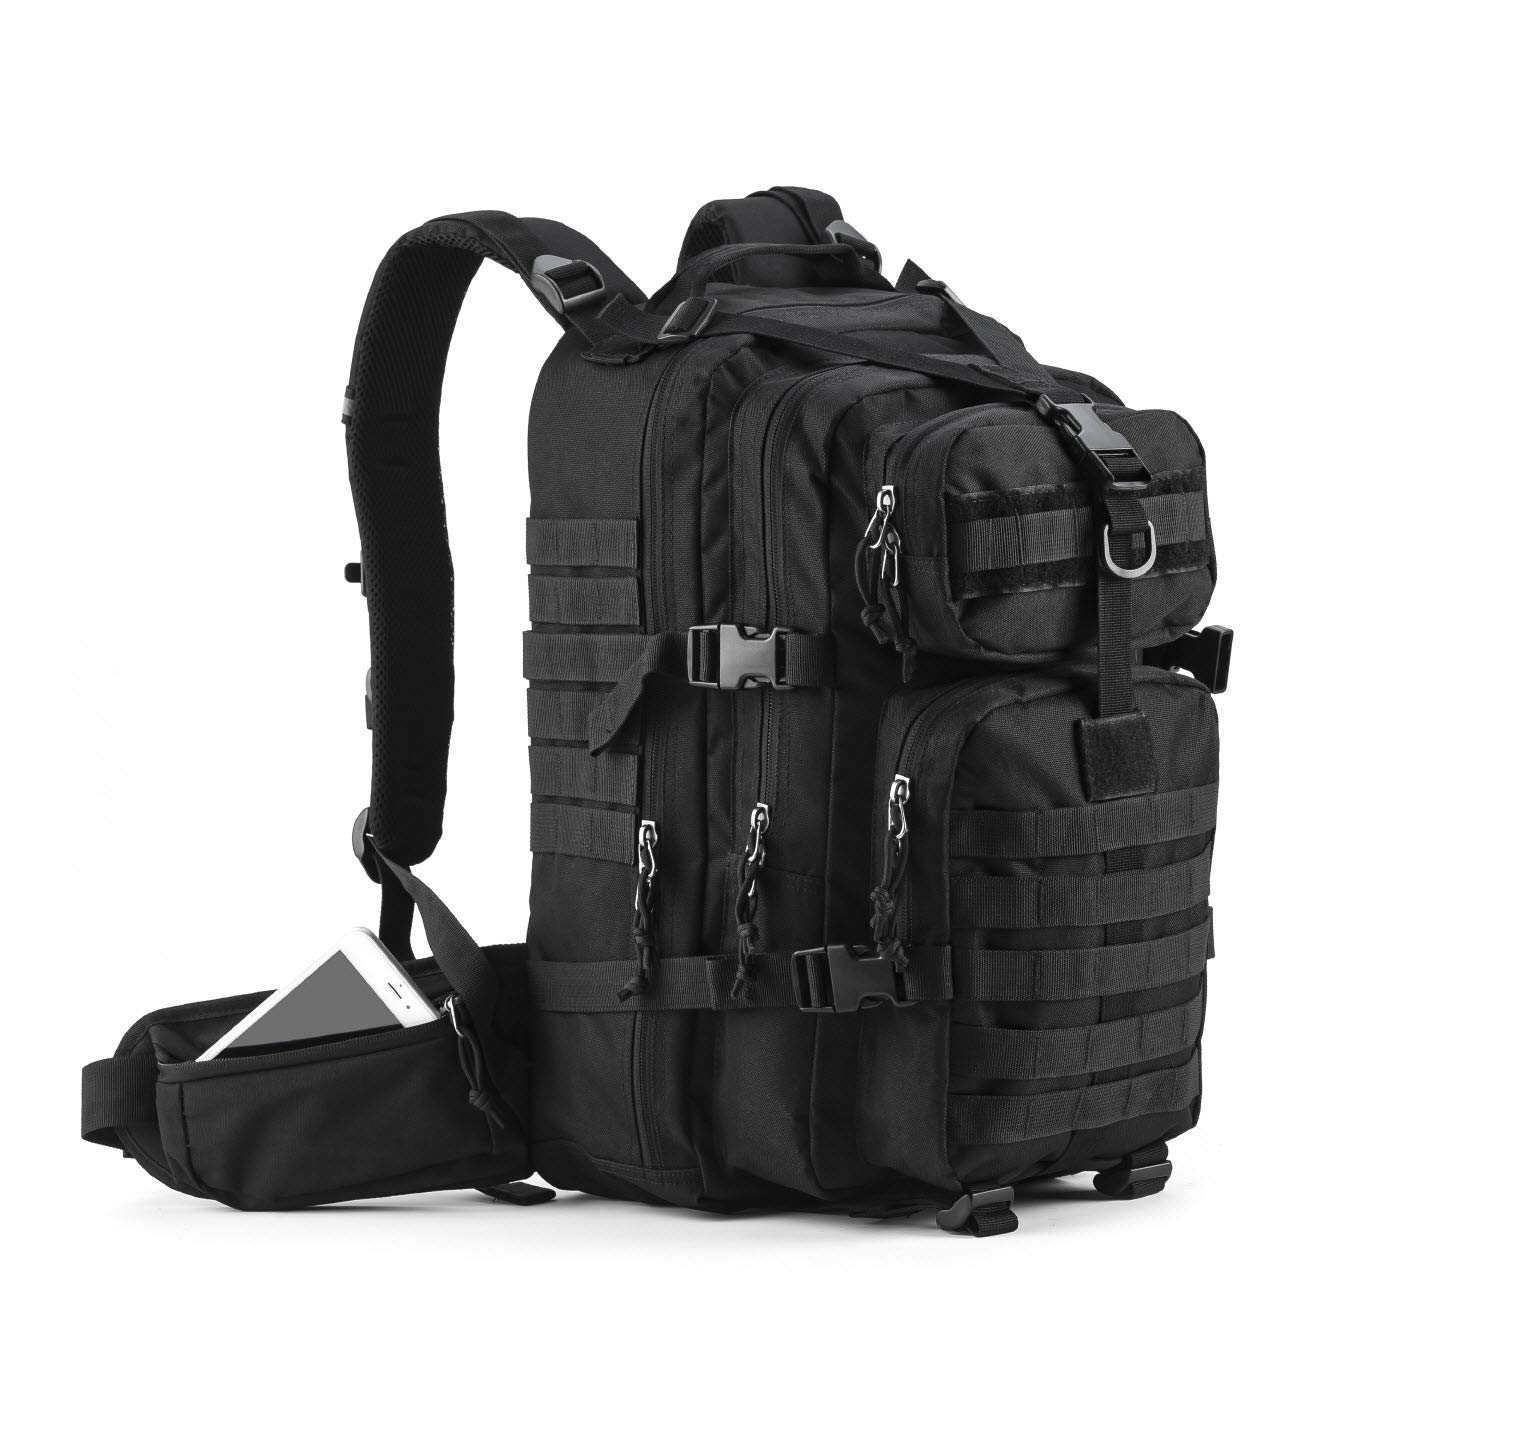 Gelindo Military Tactical Backpack, Army Molle Bag for Hunting Survival Camping by Gelindo